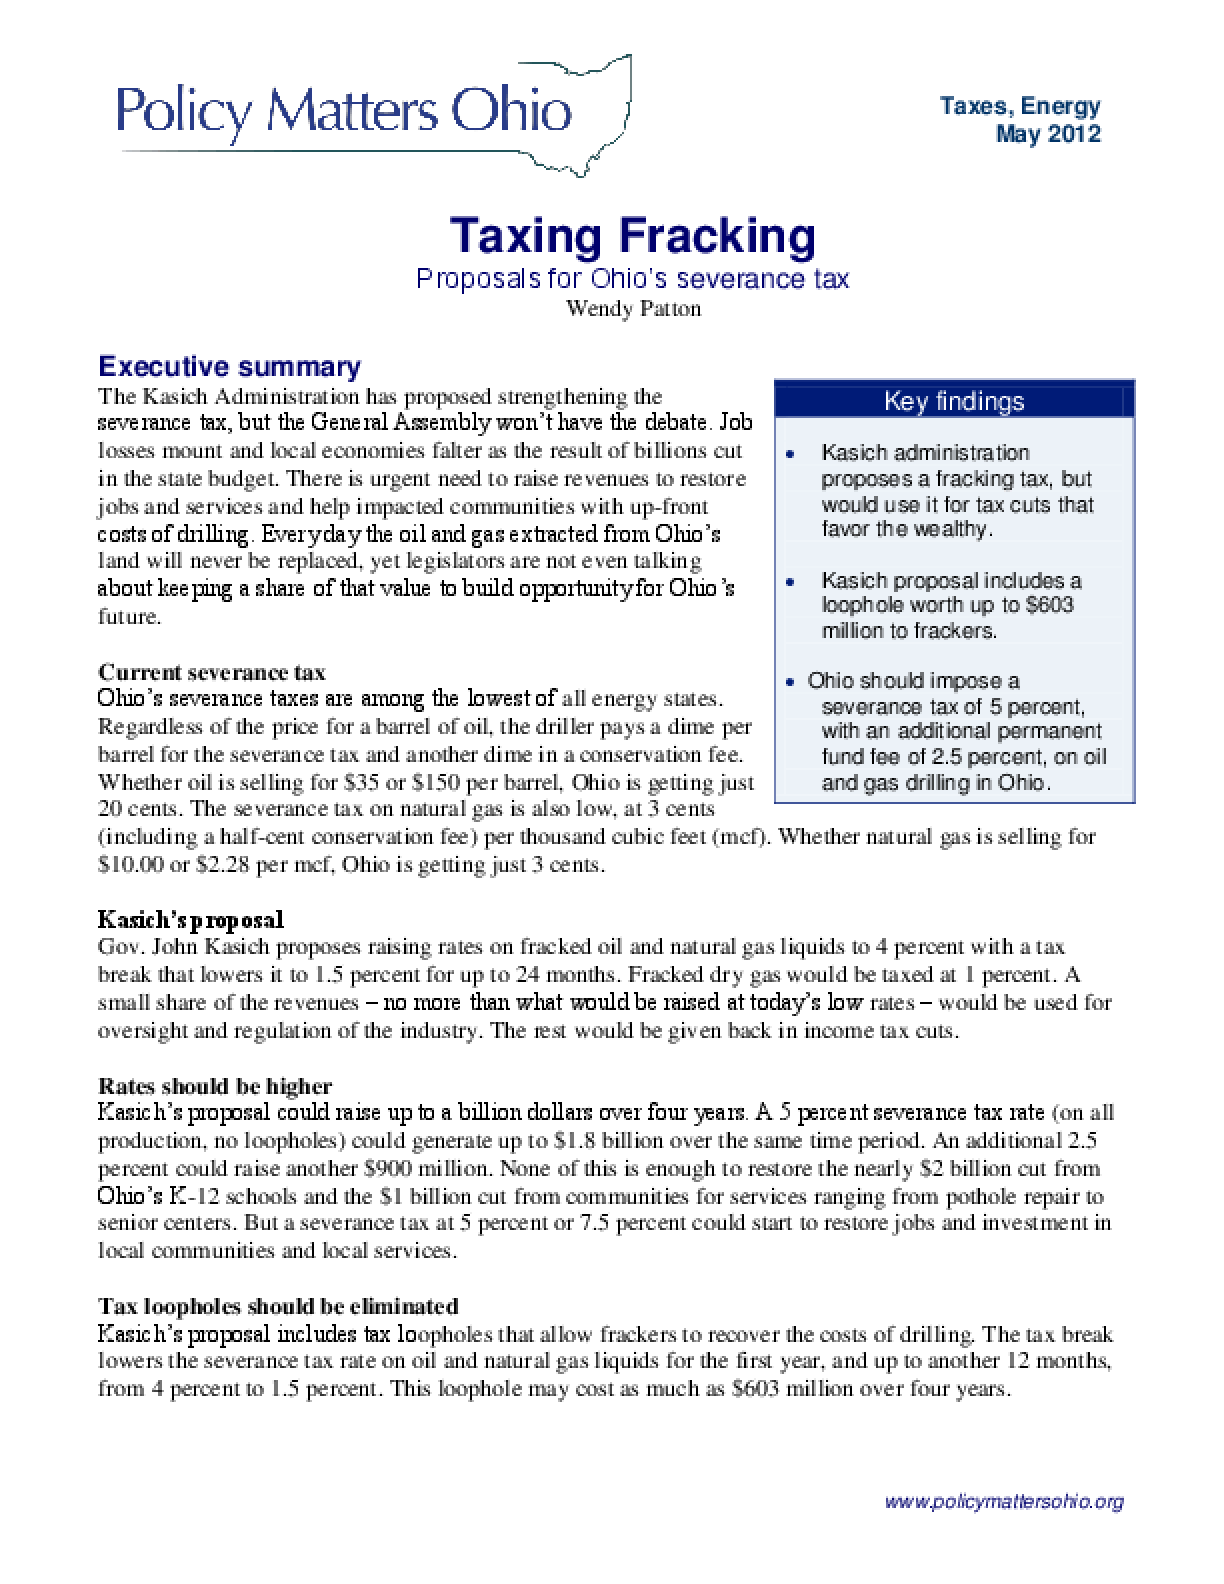 Taxing Fracking: Proposals for Ohio's Severance Tax